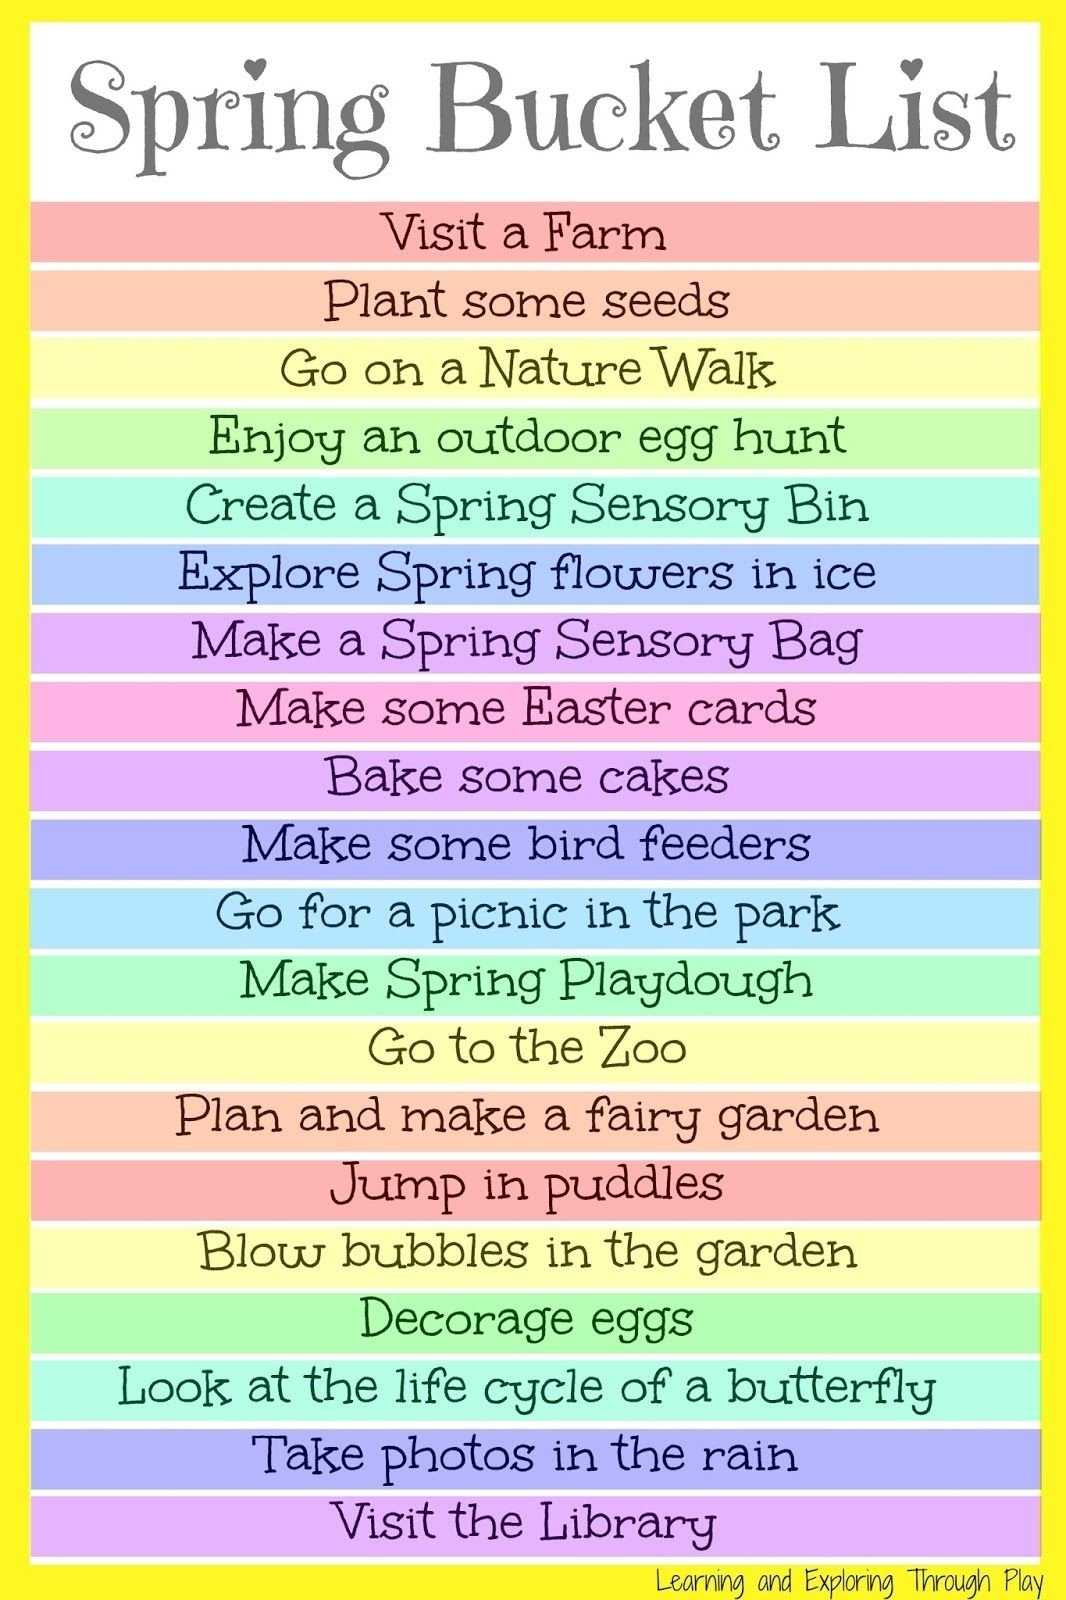 spring bucket list for kids and families | spring bucket lists, fun